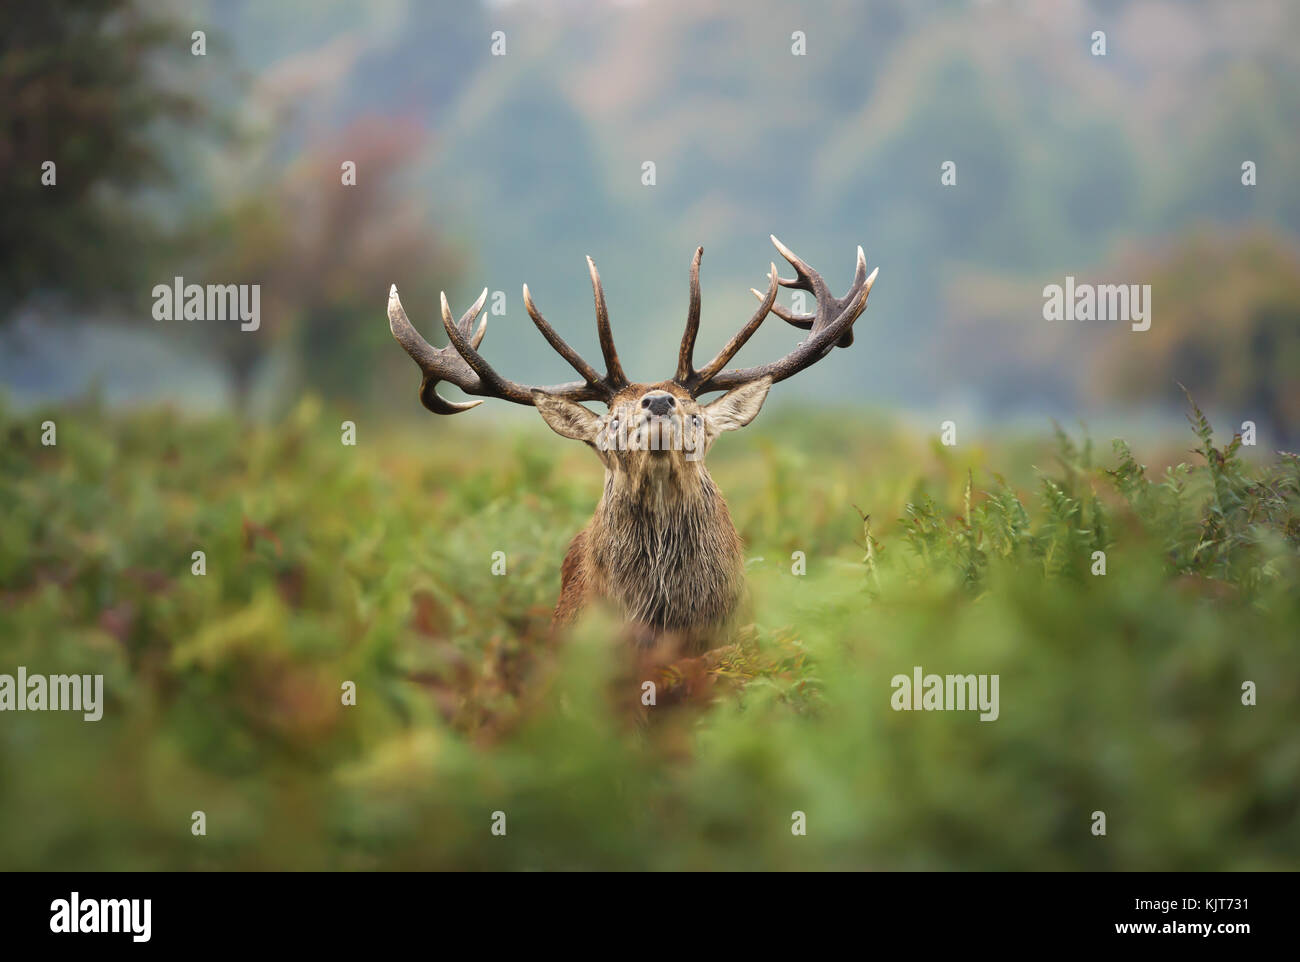 Red deer stag during the rut - Stock Image